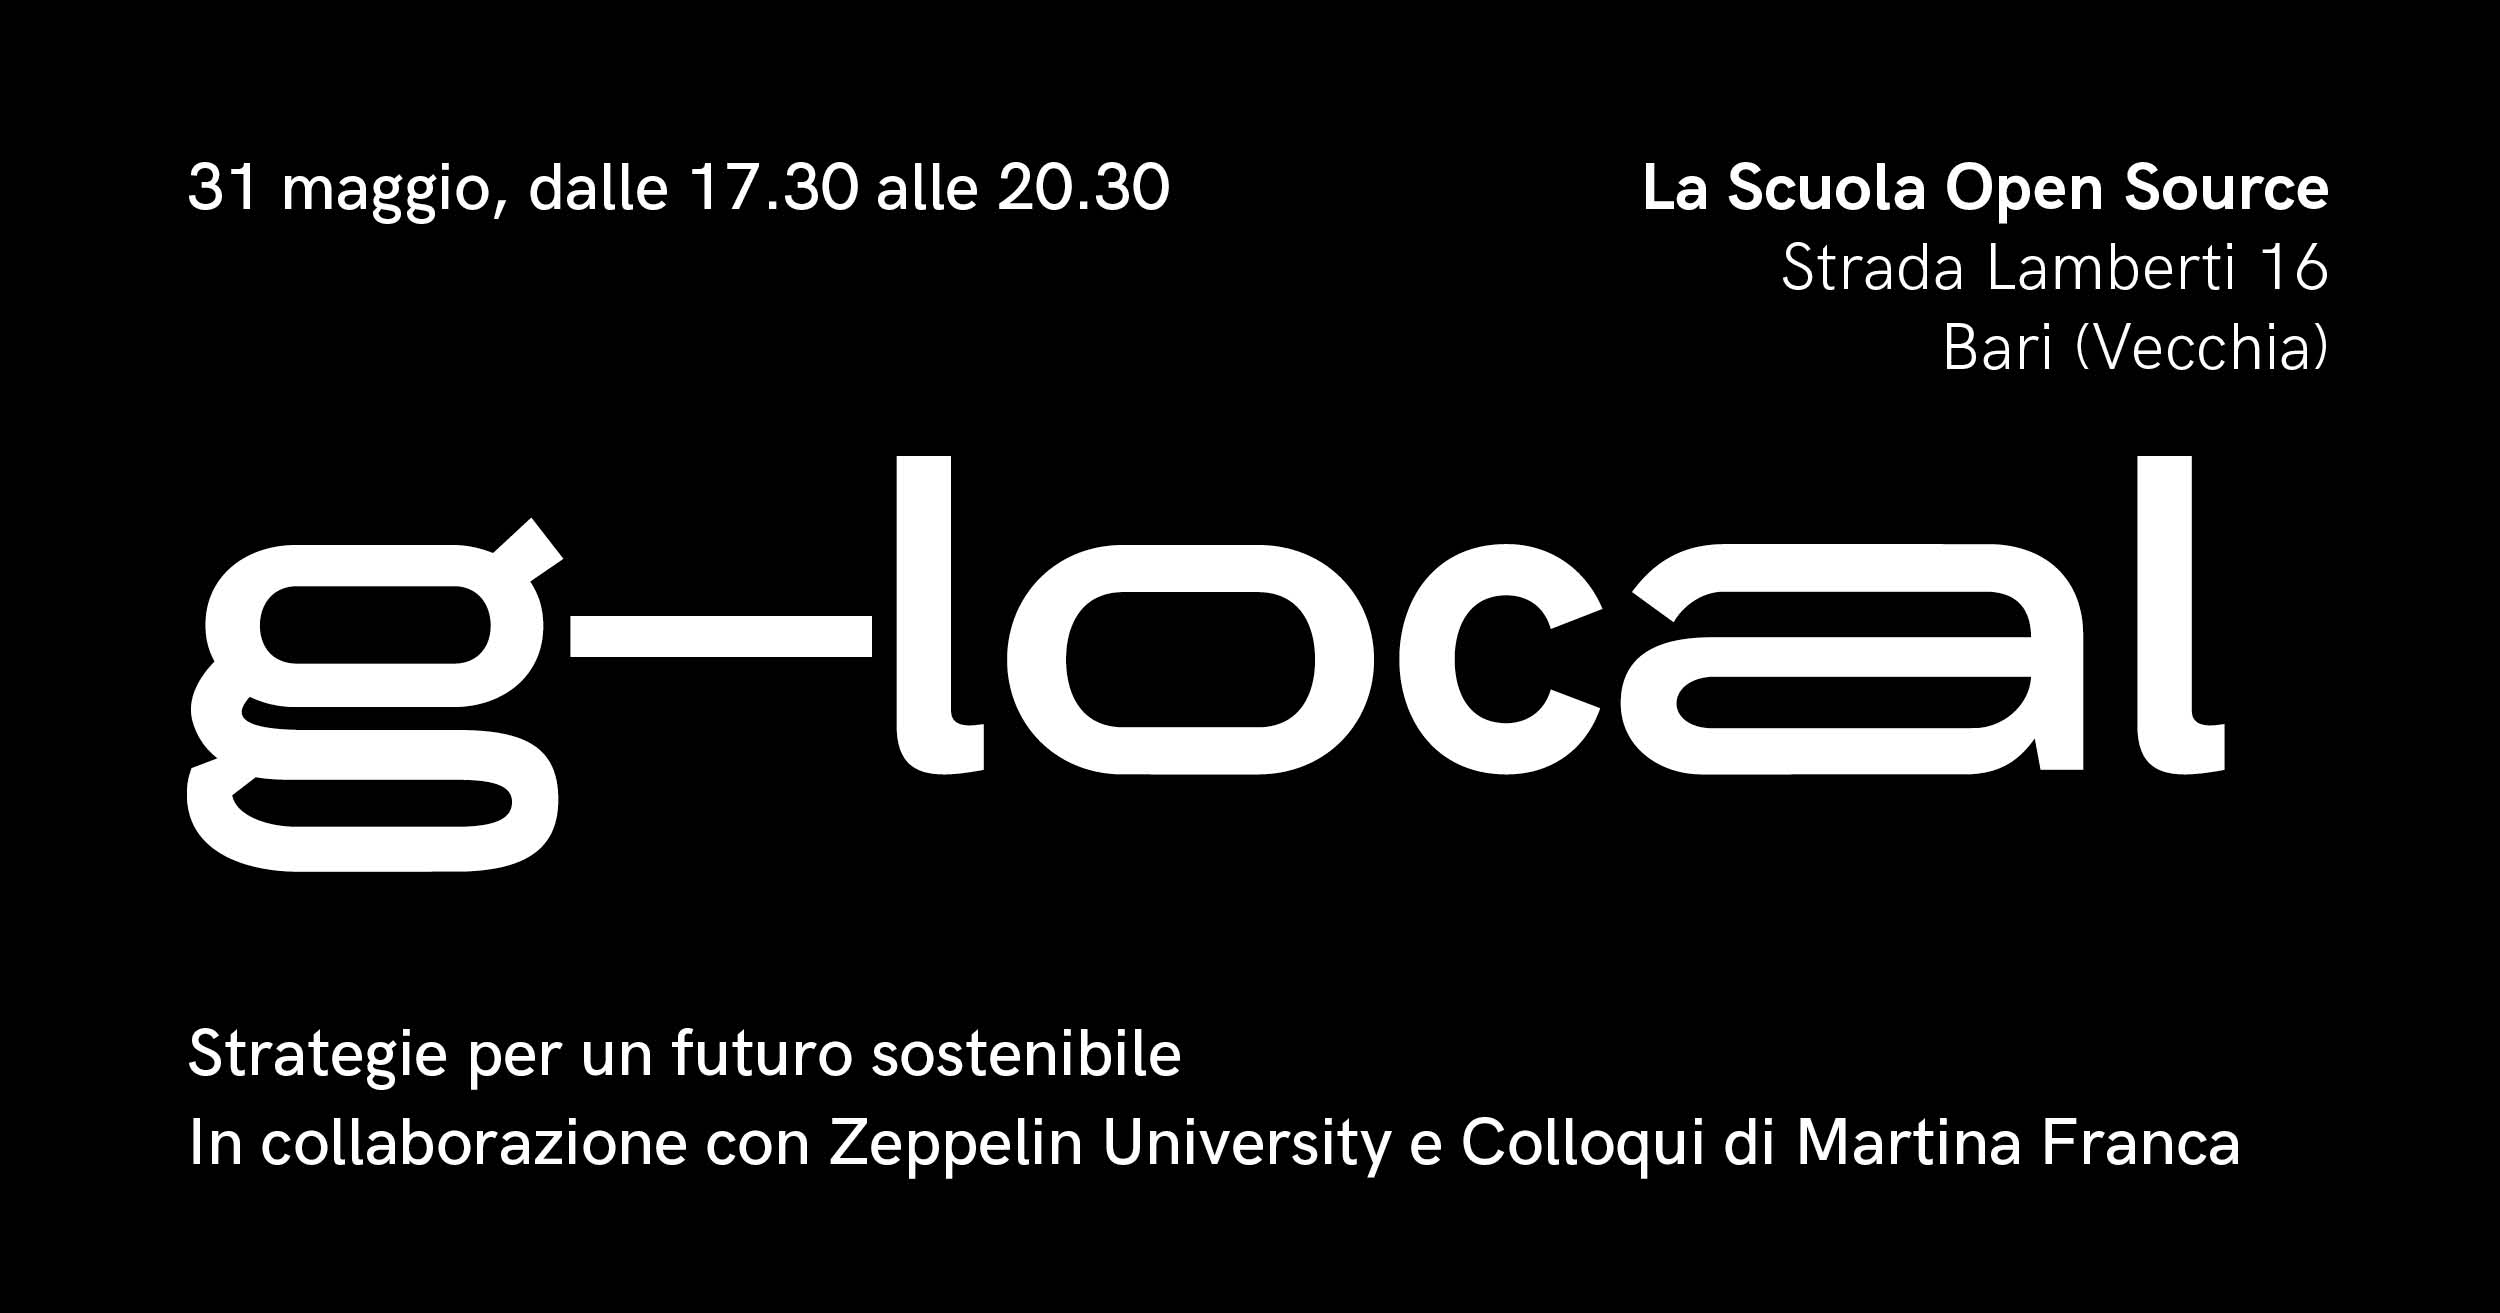 g-local — strategie per un futuro sostenibile